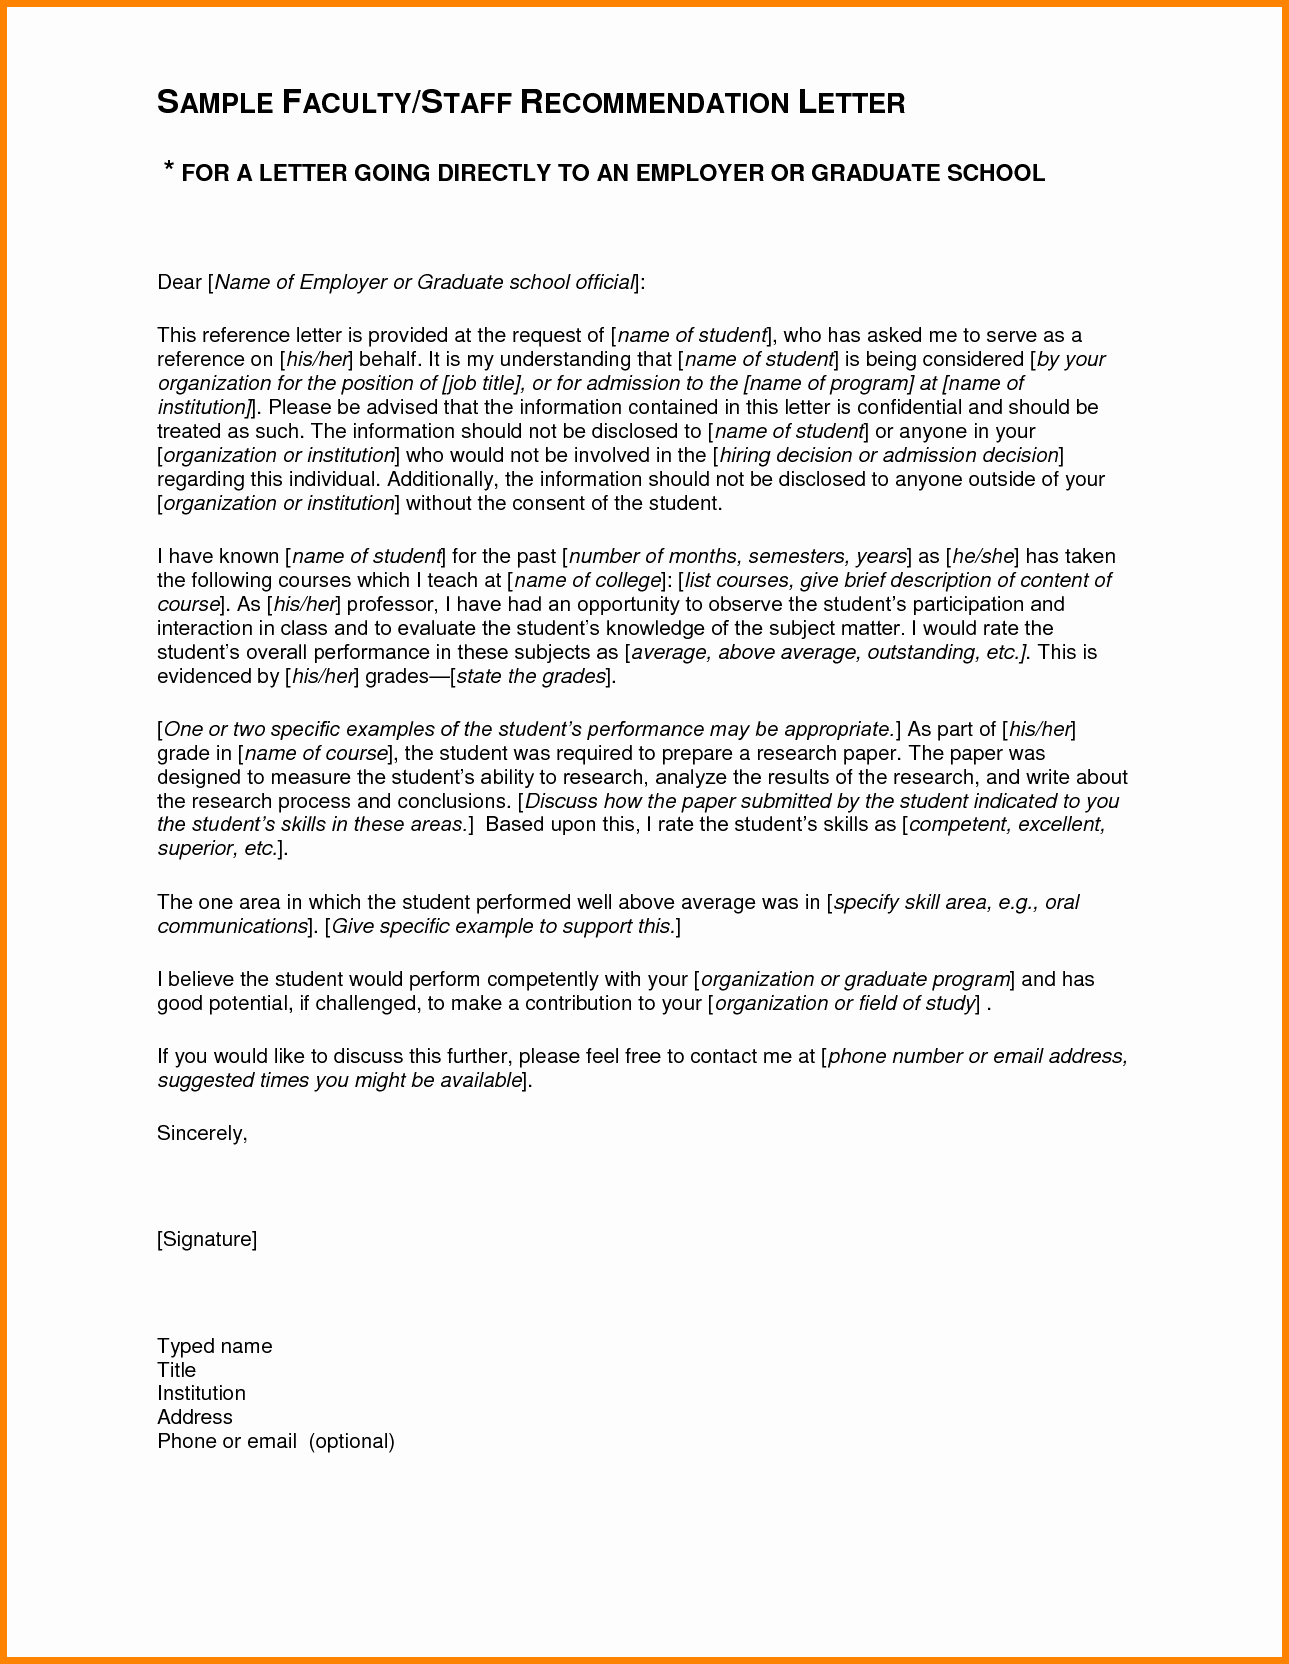 Letter Of Recommendation Template Student Awesome 4 Re Mendation Letter Sample for Student